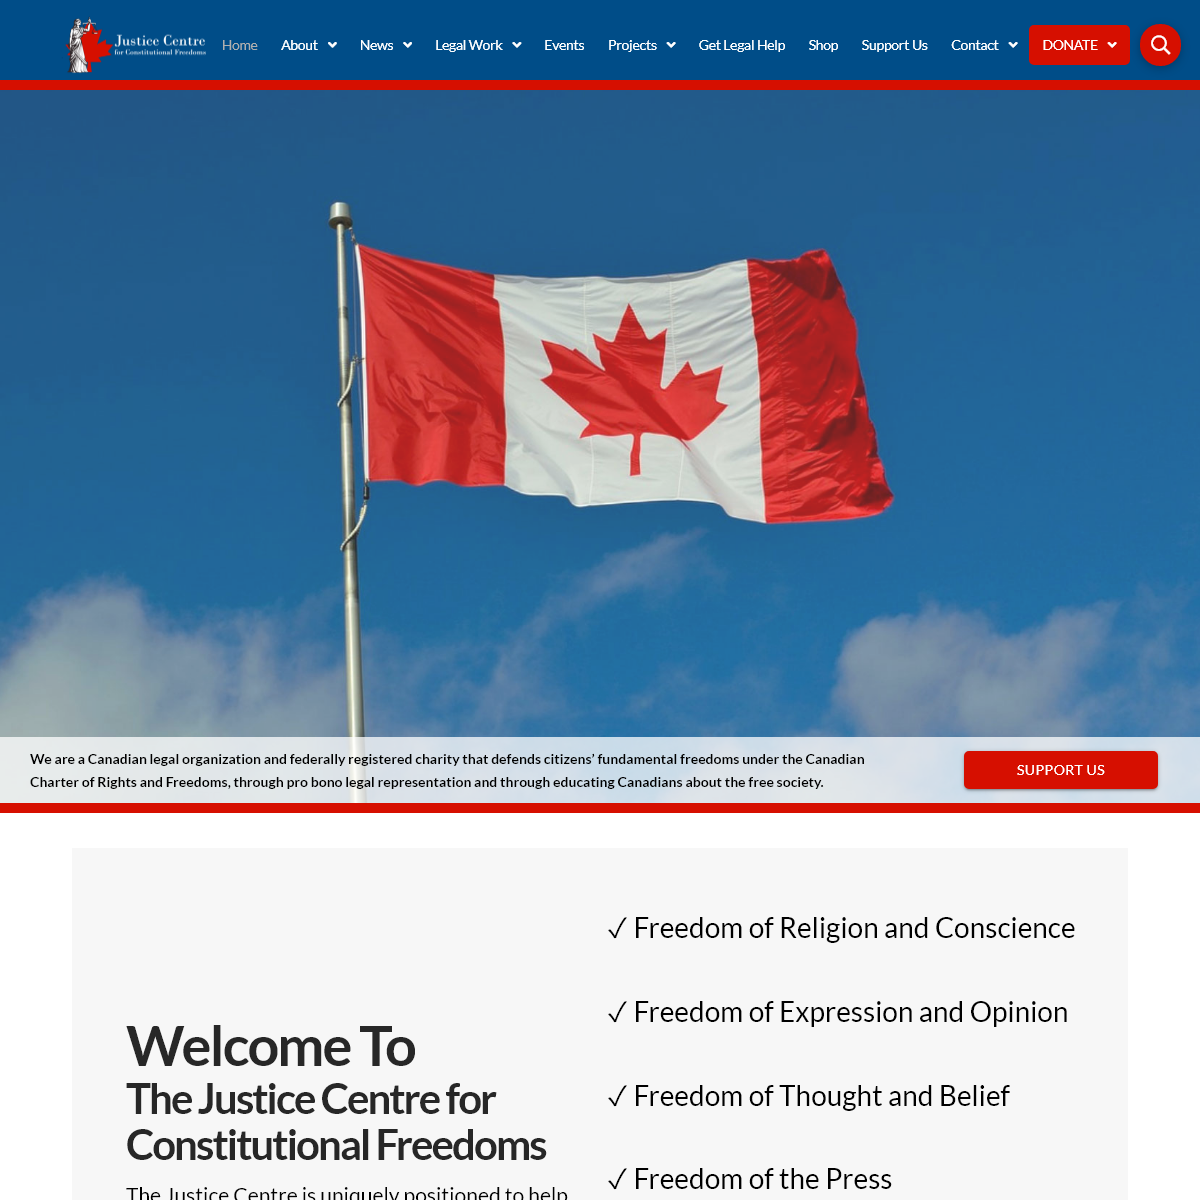 Legal Advocacy in Canada - Justice Centre for Constitutional Freedoms